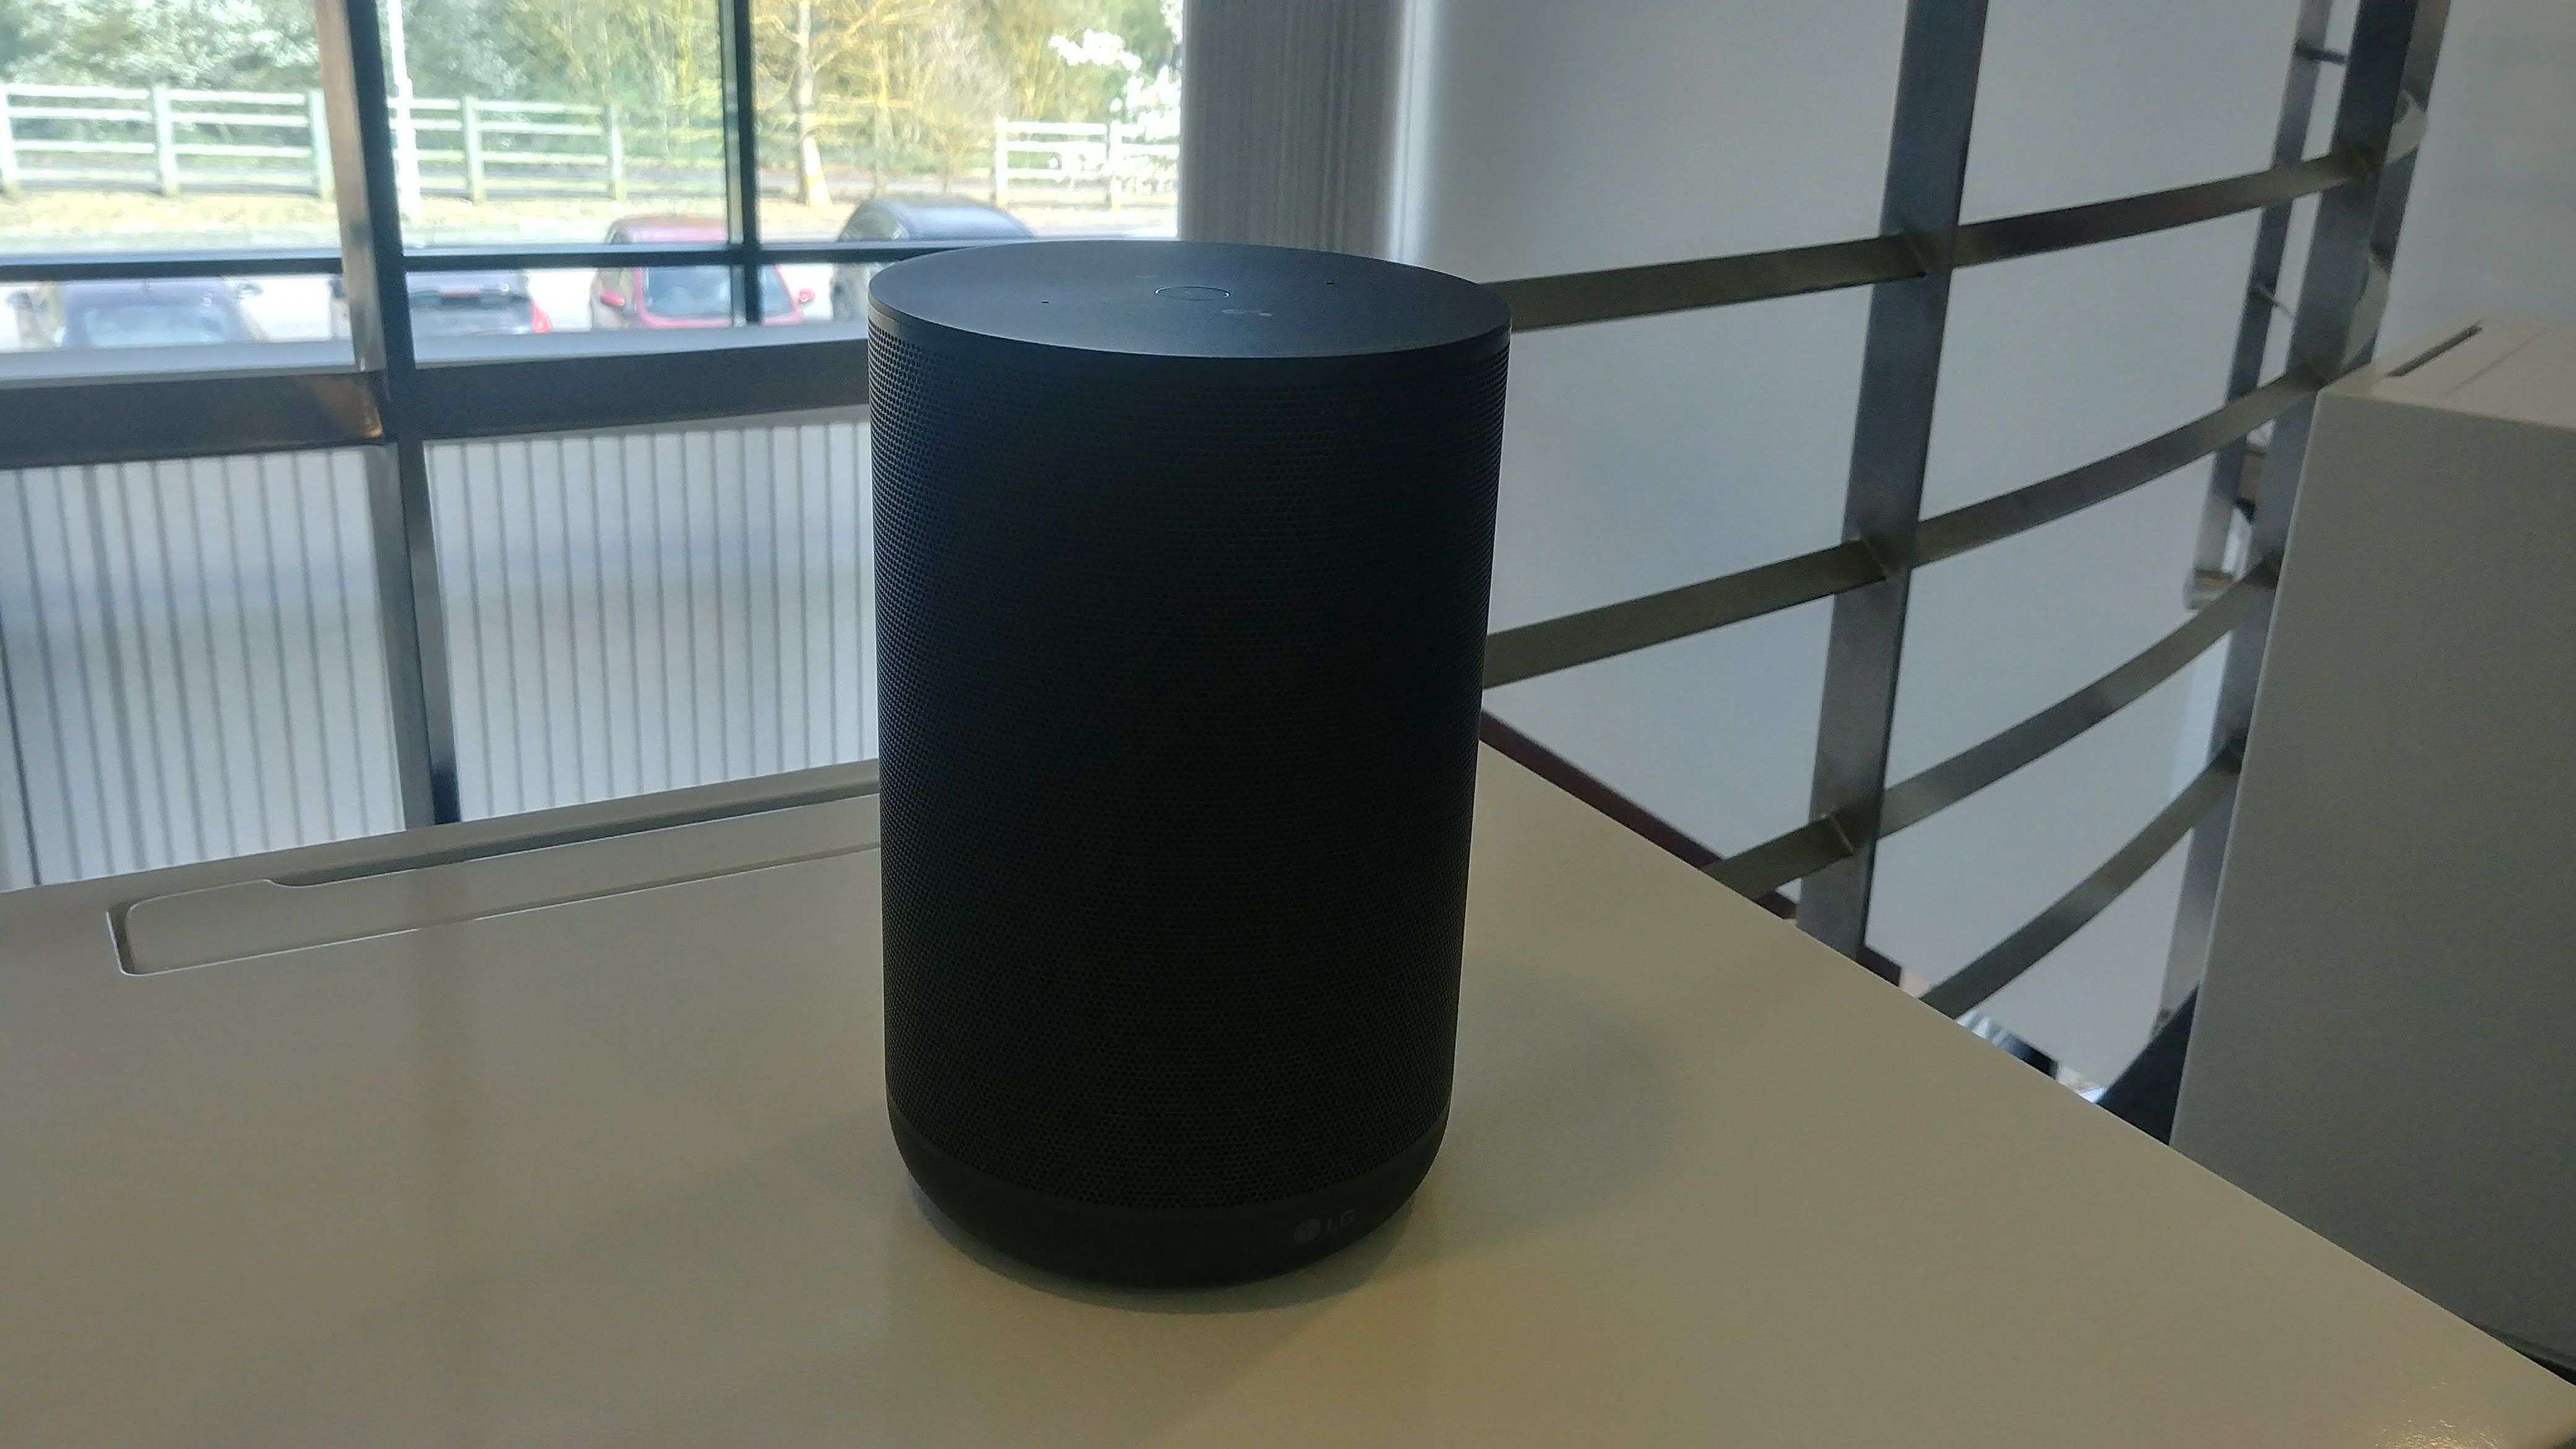 LG ThinQ WK7 smart speaker | Speakers and Tech